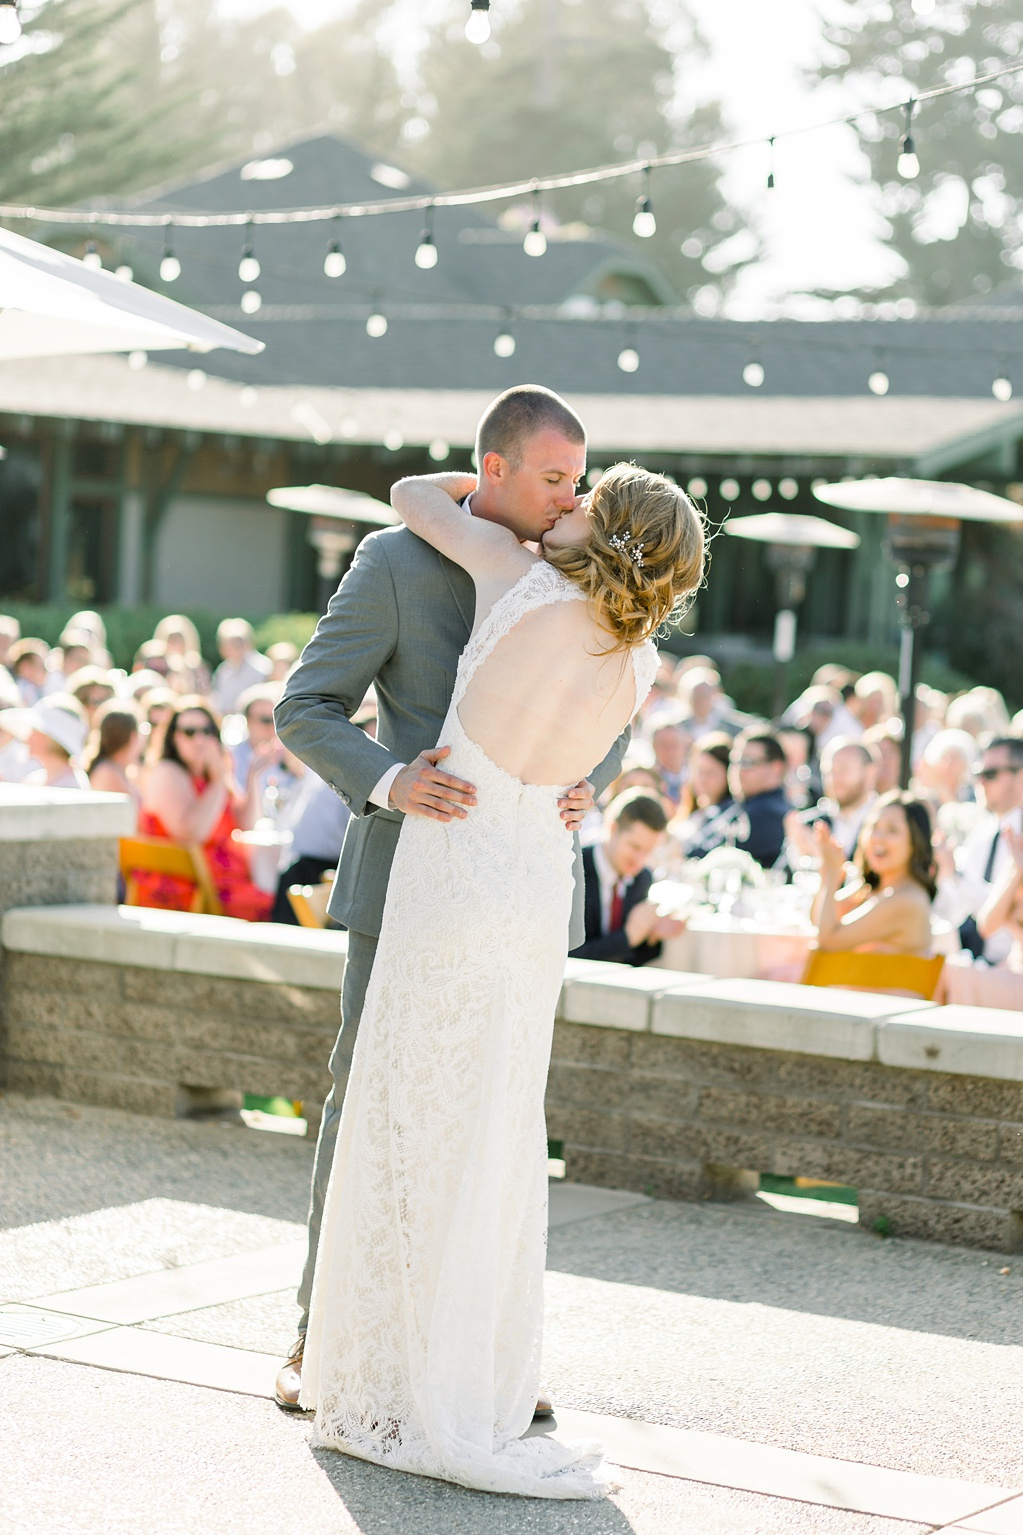 White Barn Inspired Summer Wedding In The Valley of Arroyo Grande, California by Wedding Photographer Madison Ellis. (45)